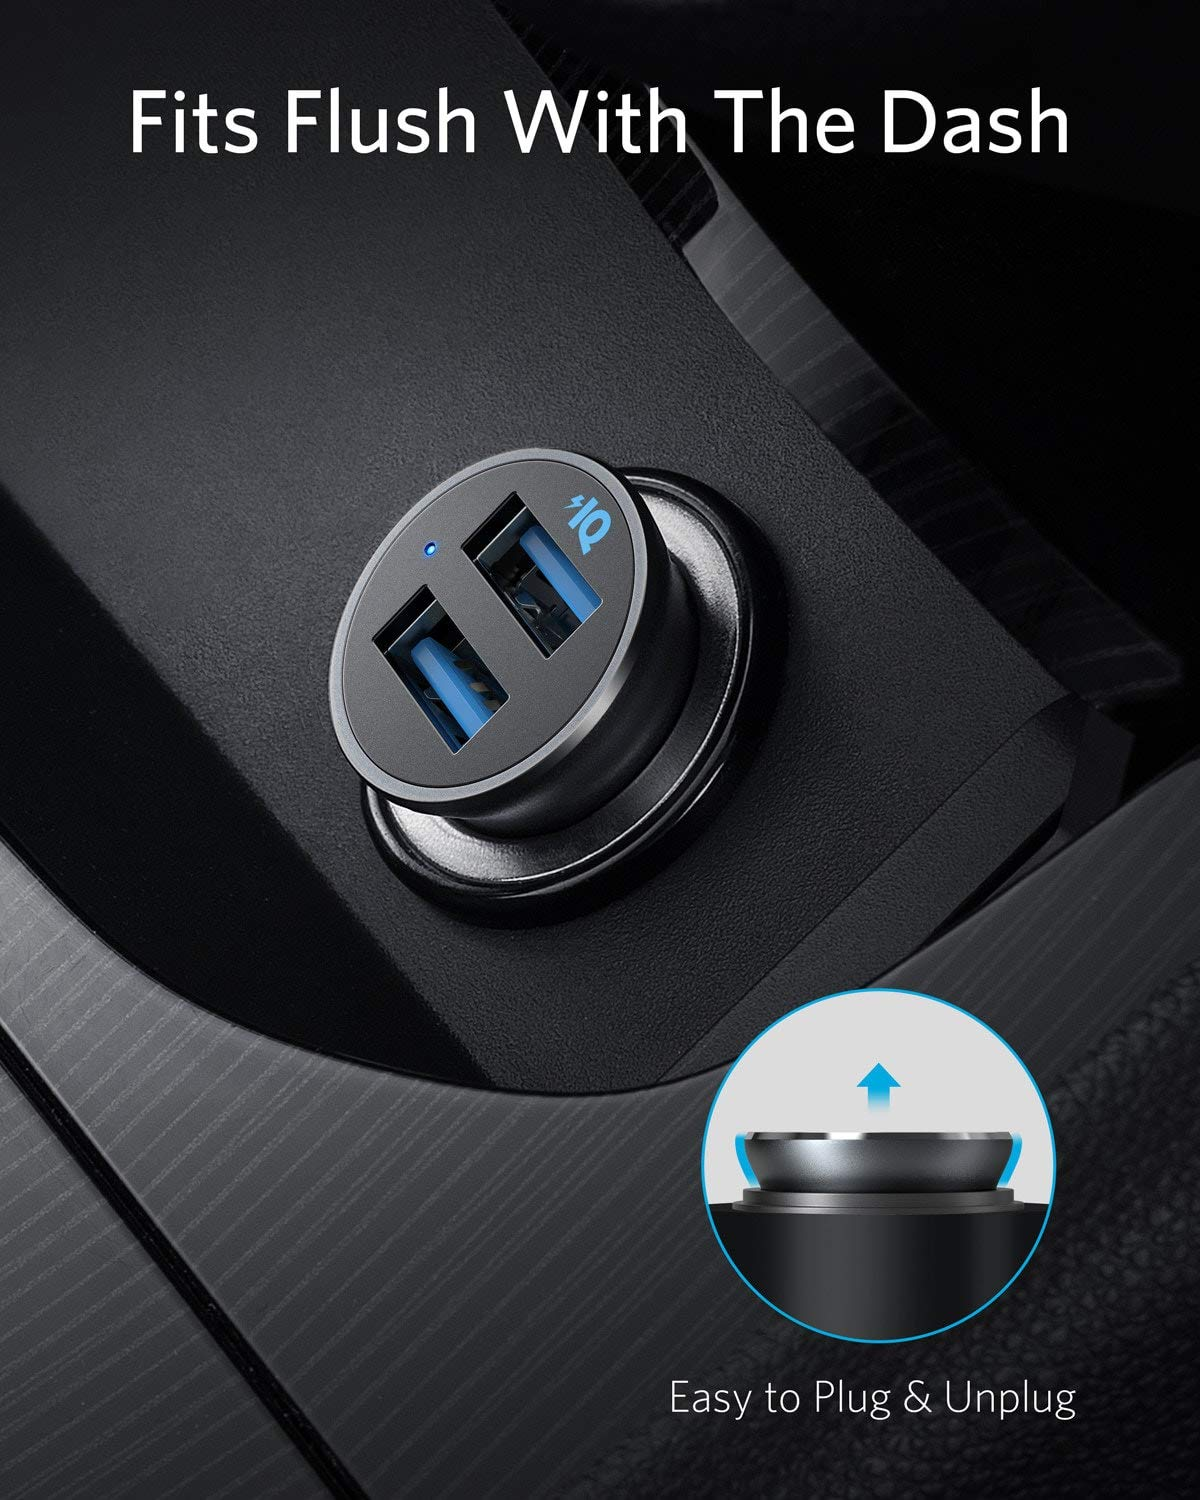 Anker Car Charger, Mini 24W Dual USB Car Charger, PowerDrive 2 Alloy Car Adapter with Blue LED for iPhone12/12 Pro/11/11 Pro/XR/Xs/Max/X, iPad Pro/Air 2/mini, Galaxy (Not Compatible with Quick Charge)